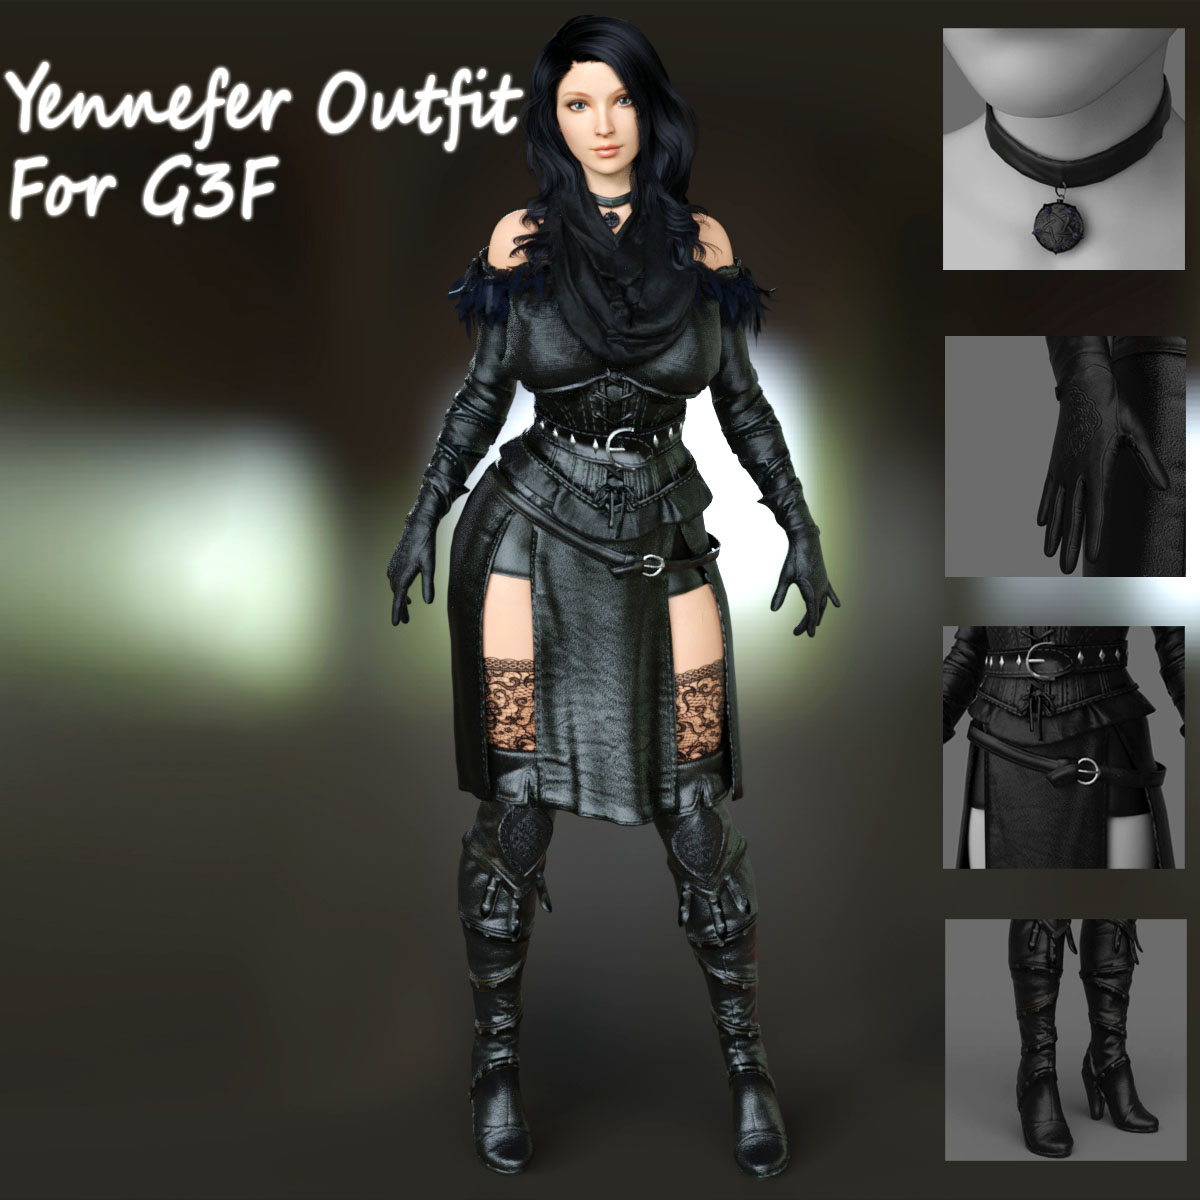 Yennefer Outfit For G3F.